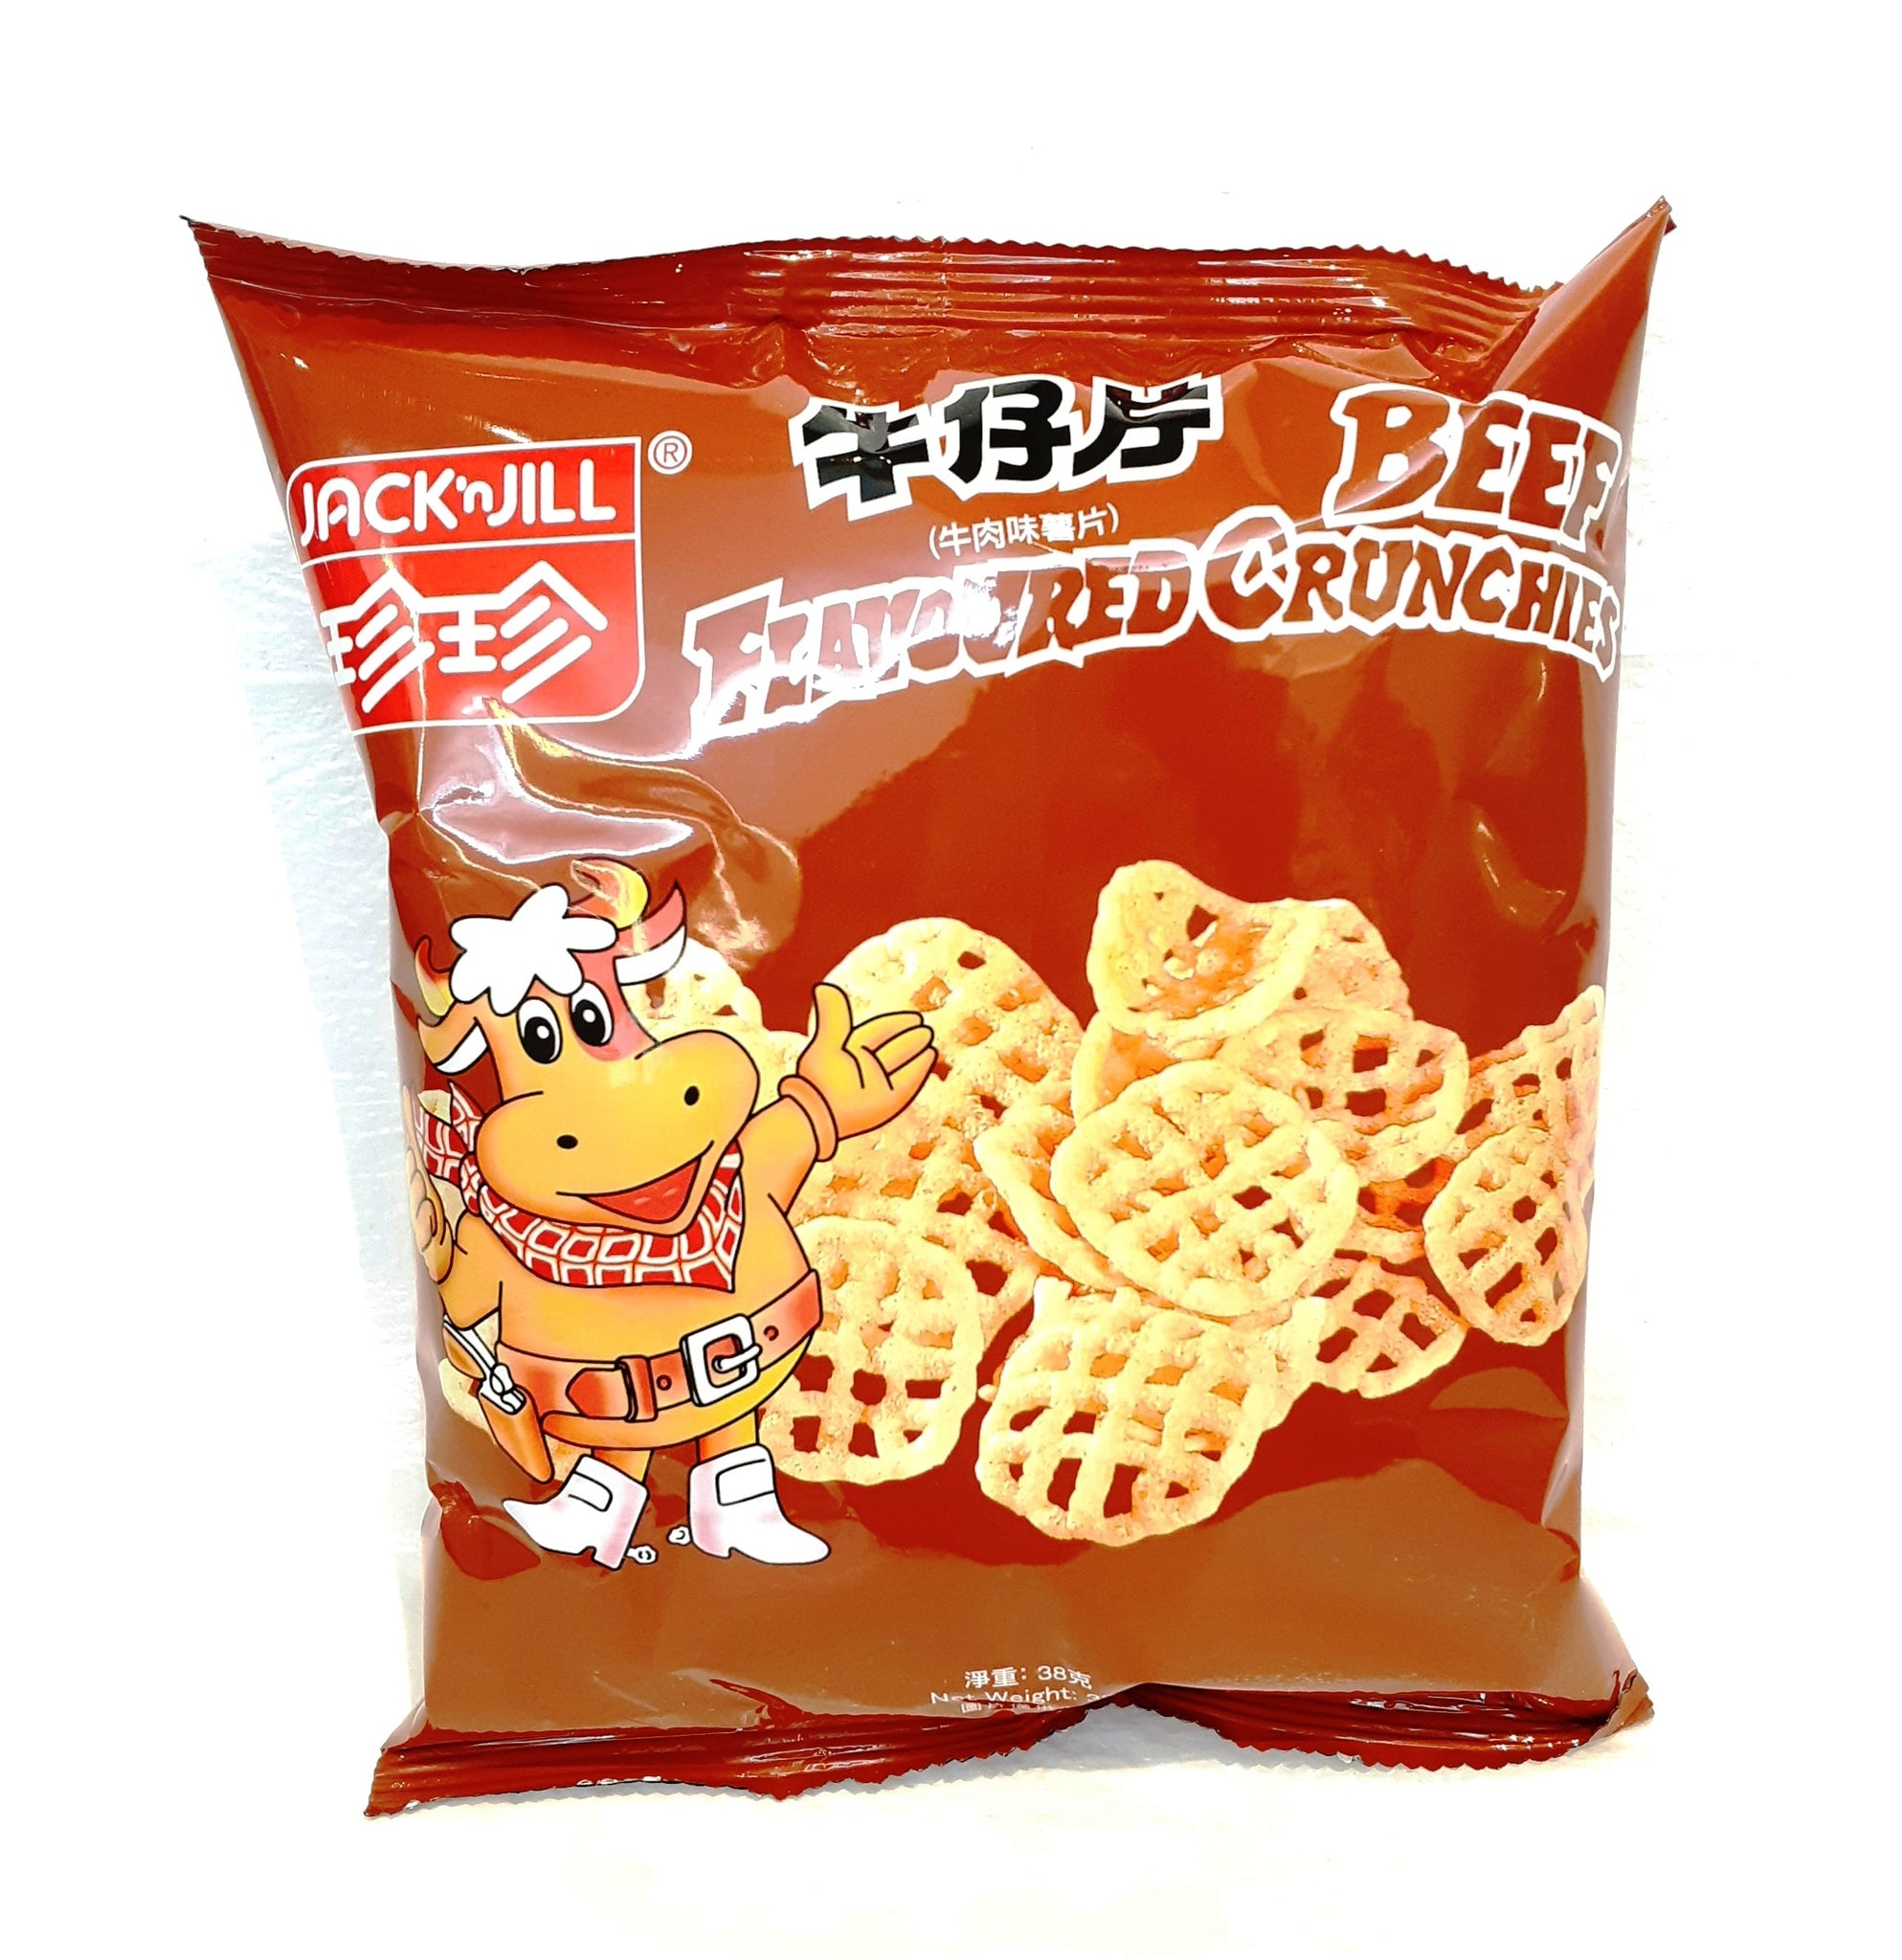 Jack'n Jill Beef Flavoured Crunchies 珍珍牛仔片